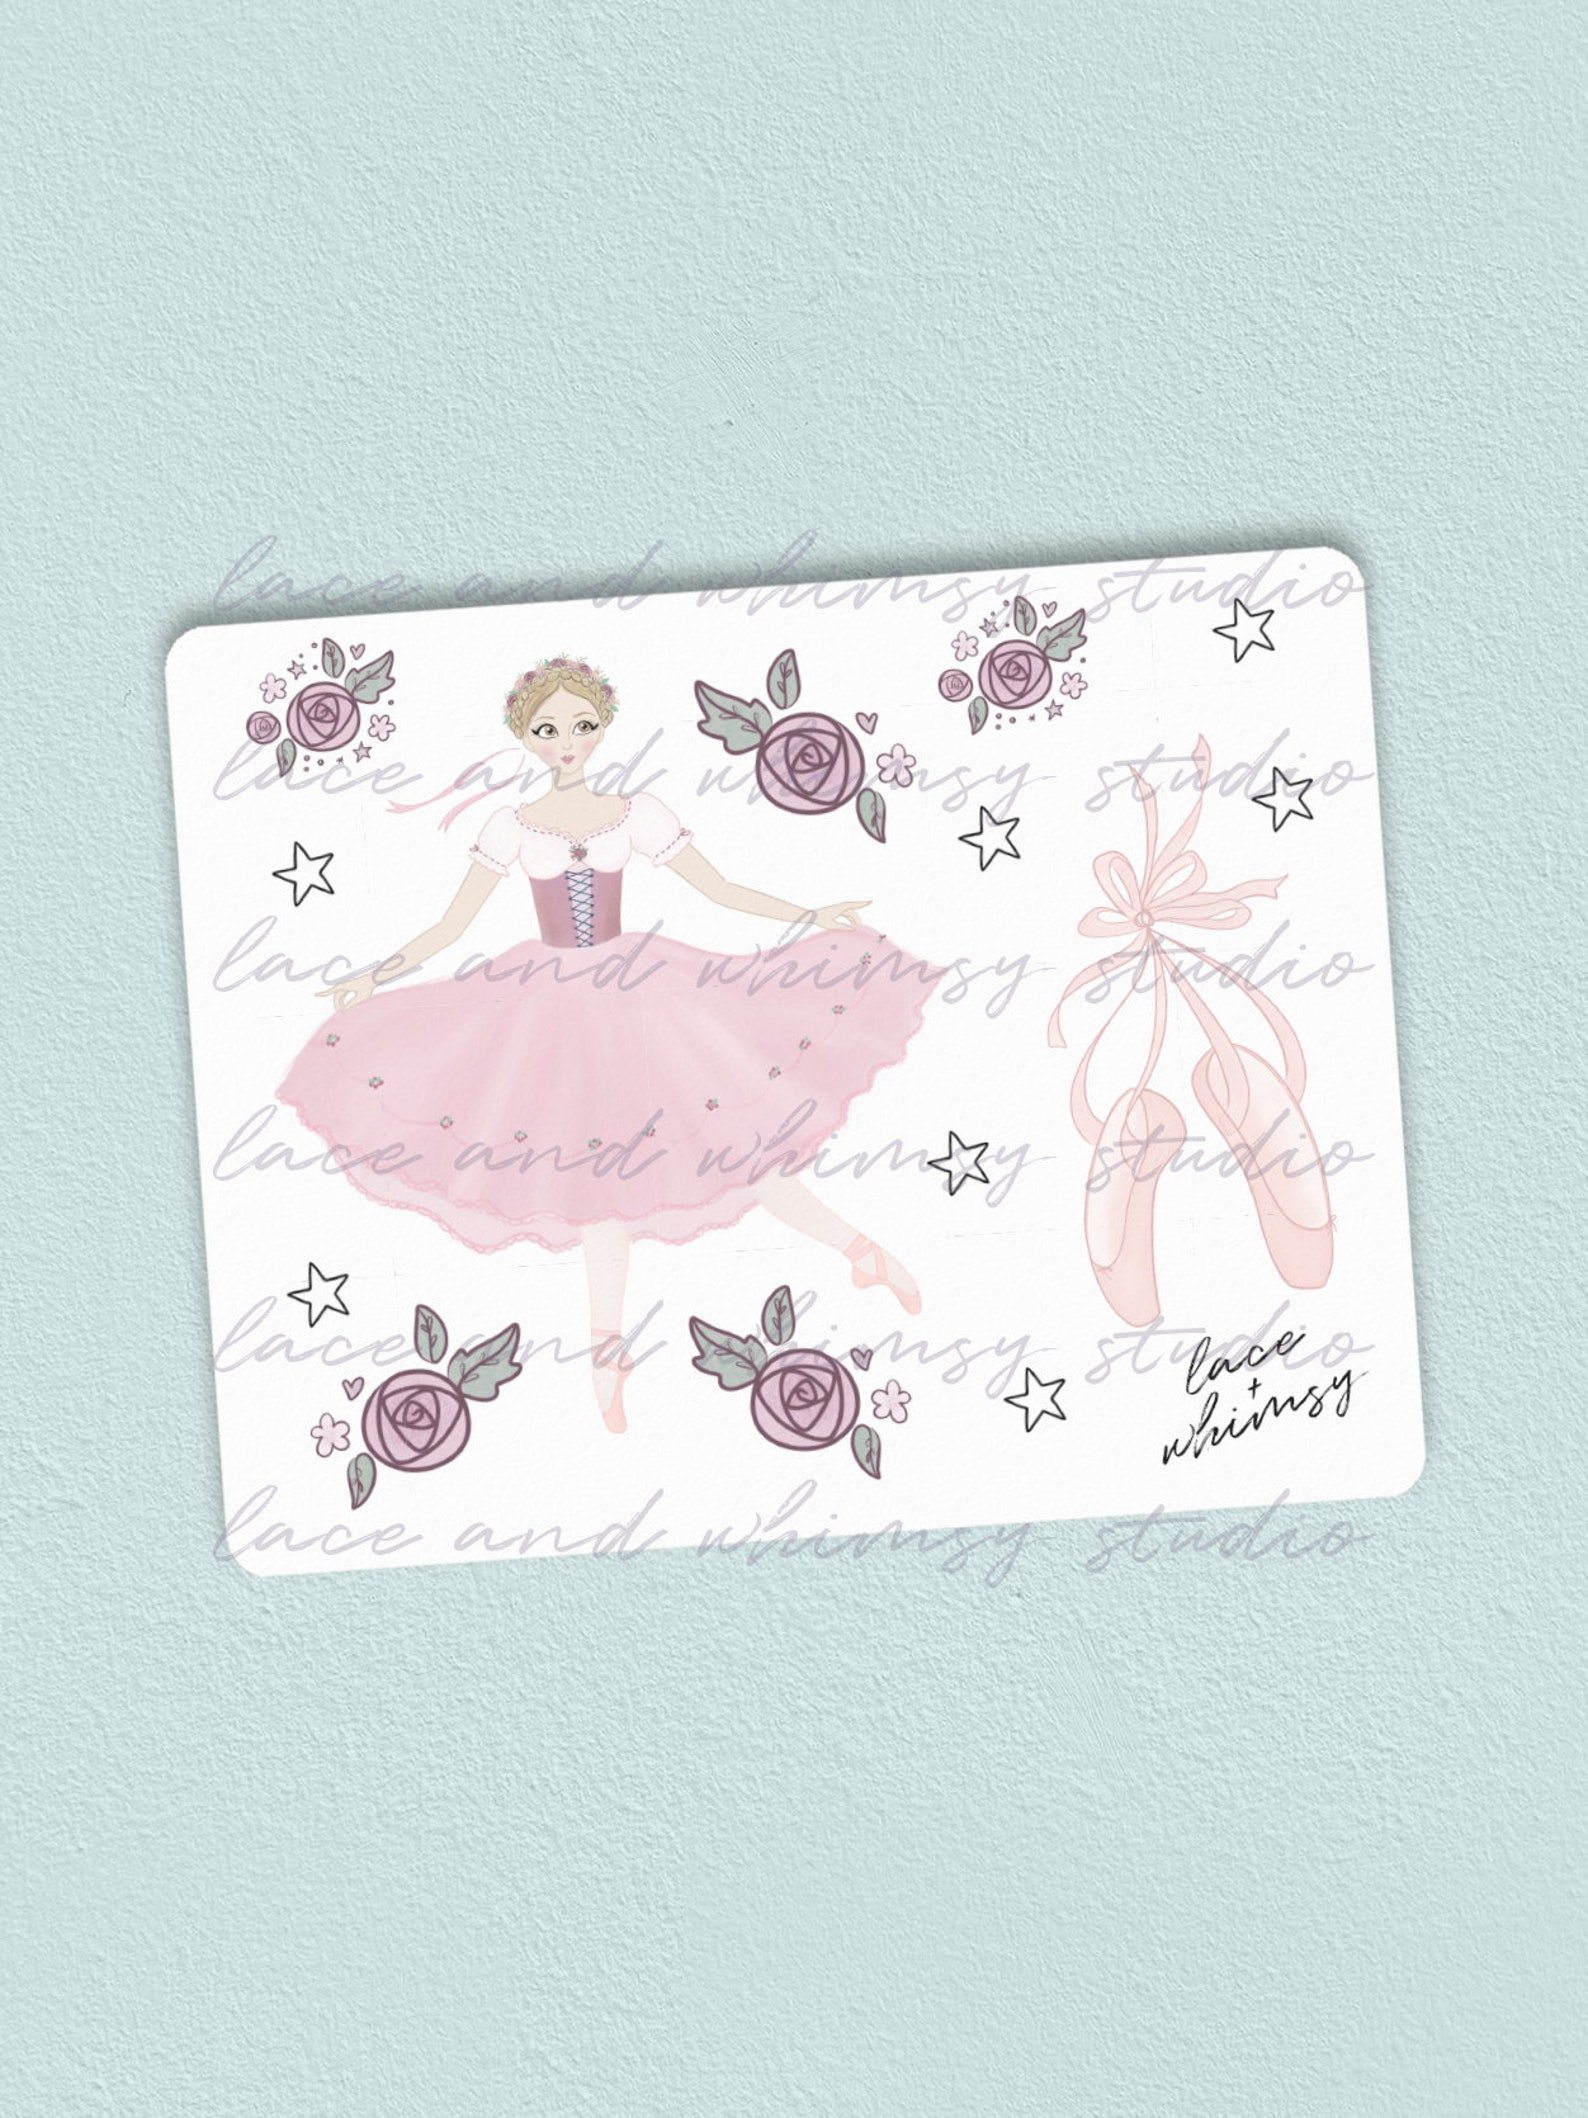 coppelia ballet; ballerina; pointe shoes; ballet shoes; pink stickers; kiss-cut decorative illustrated stickers for planners & j